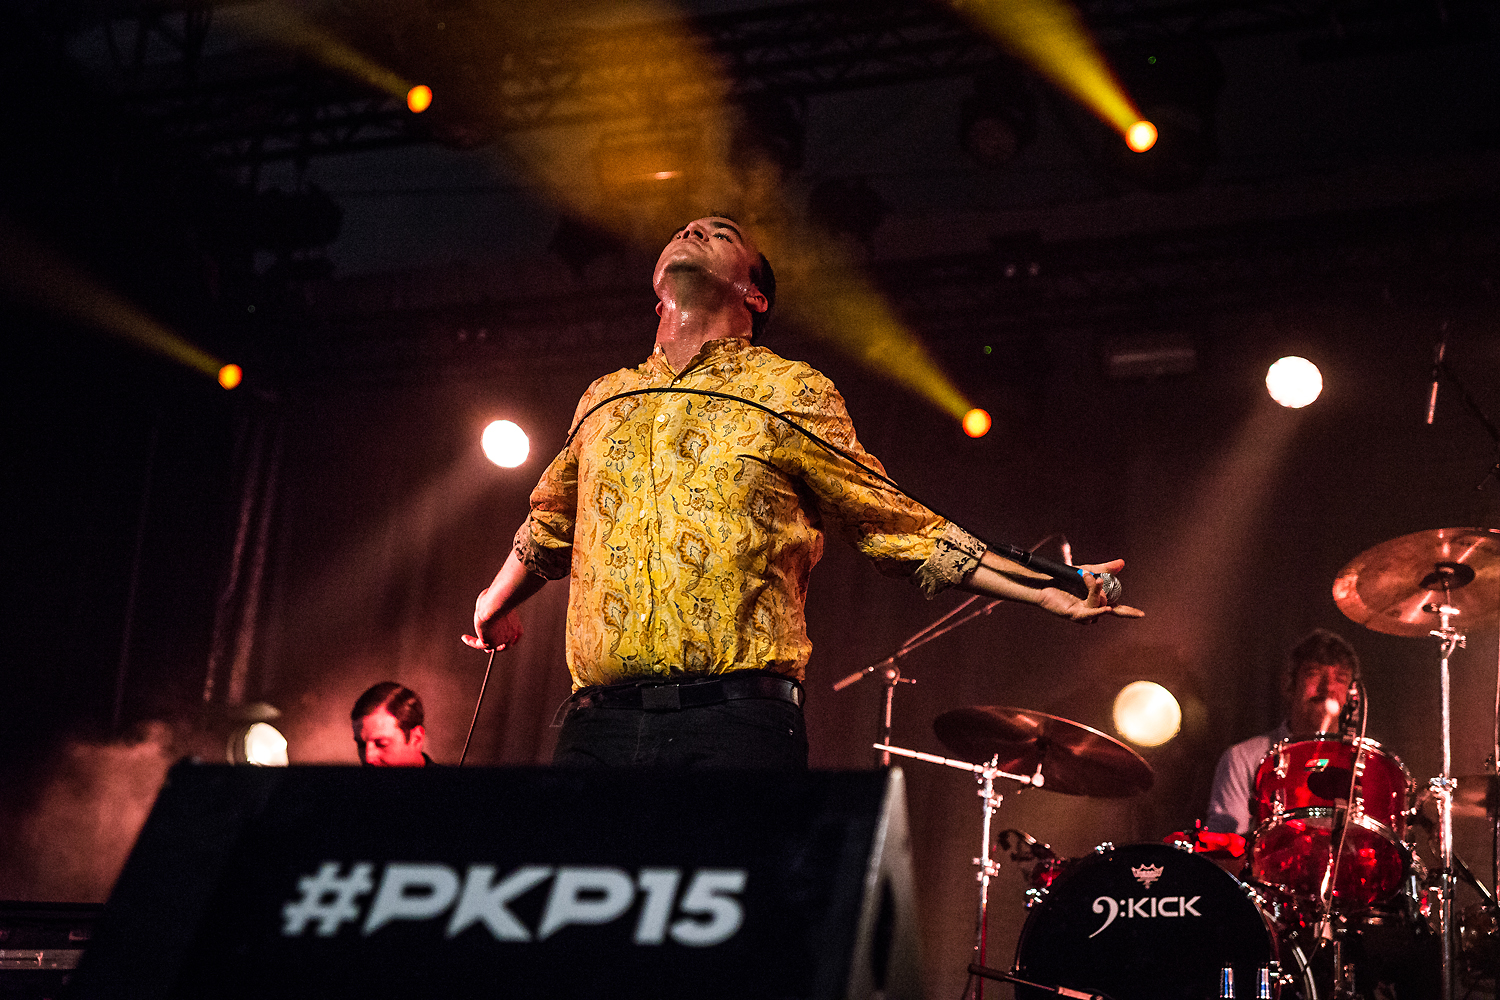 PKP 494 - Future Islands